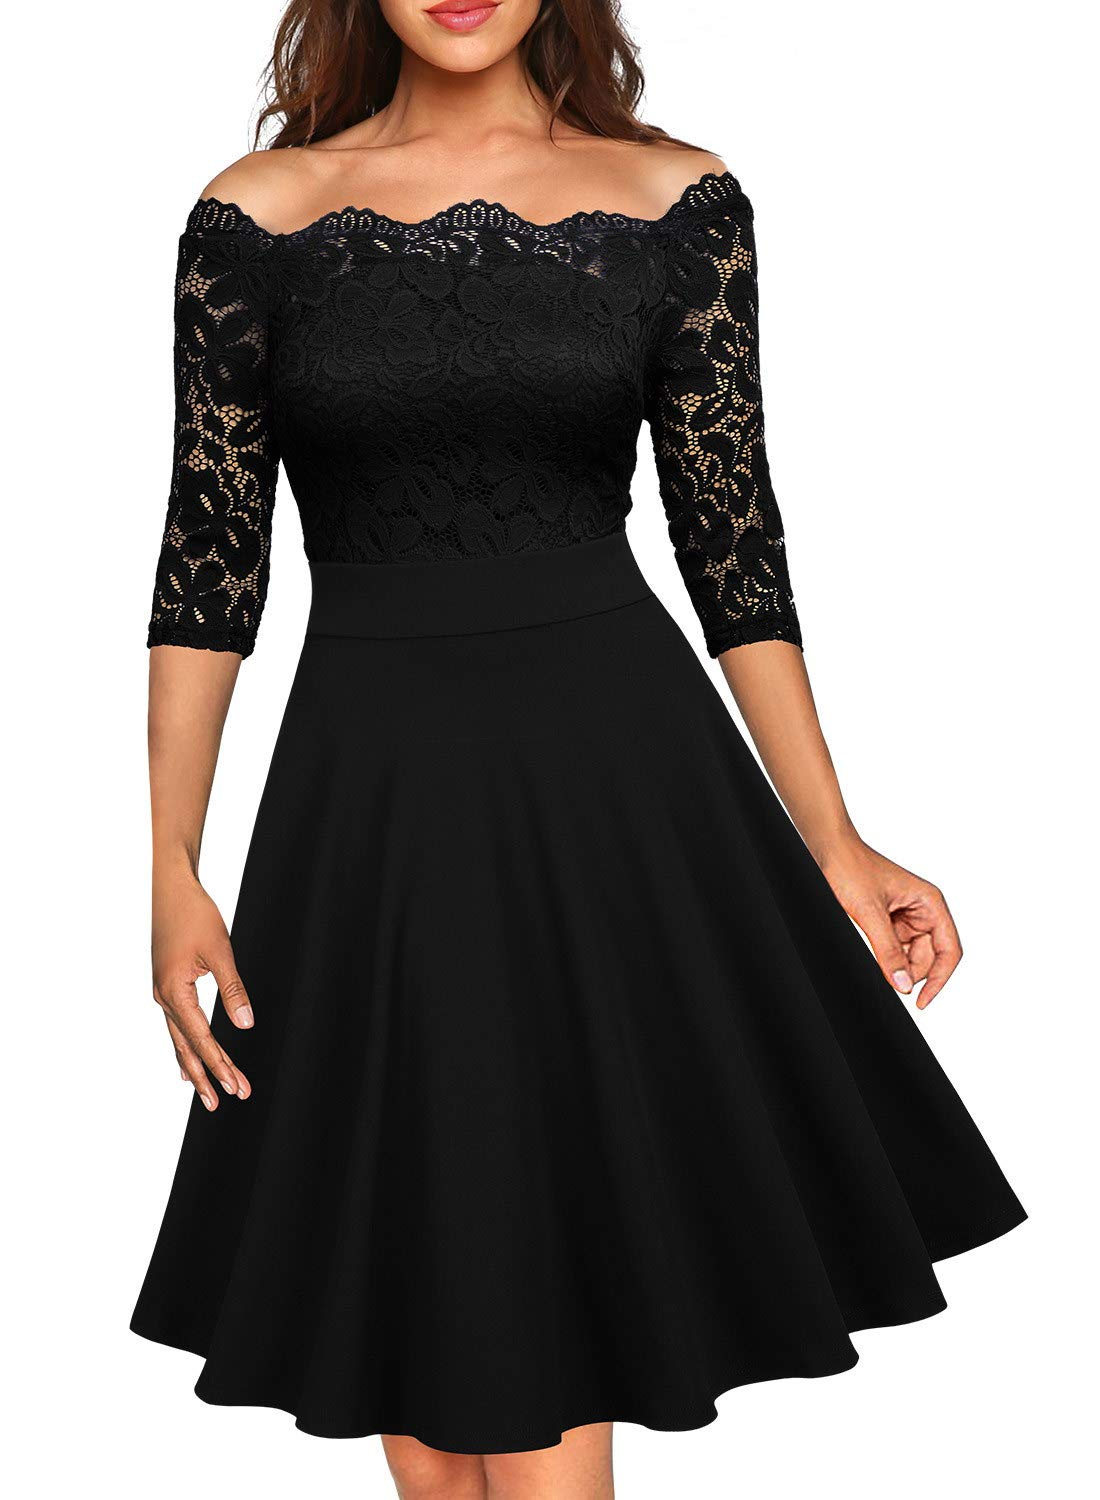 Party Dresses - Women's Vintage Floral Lace Half Sleeve Boat Neck Formal Swing Dress